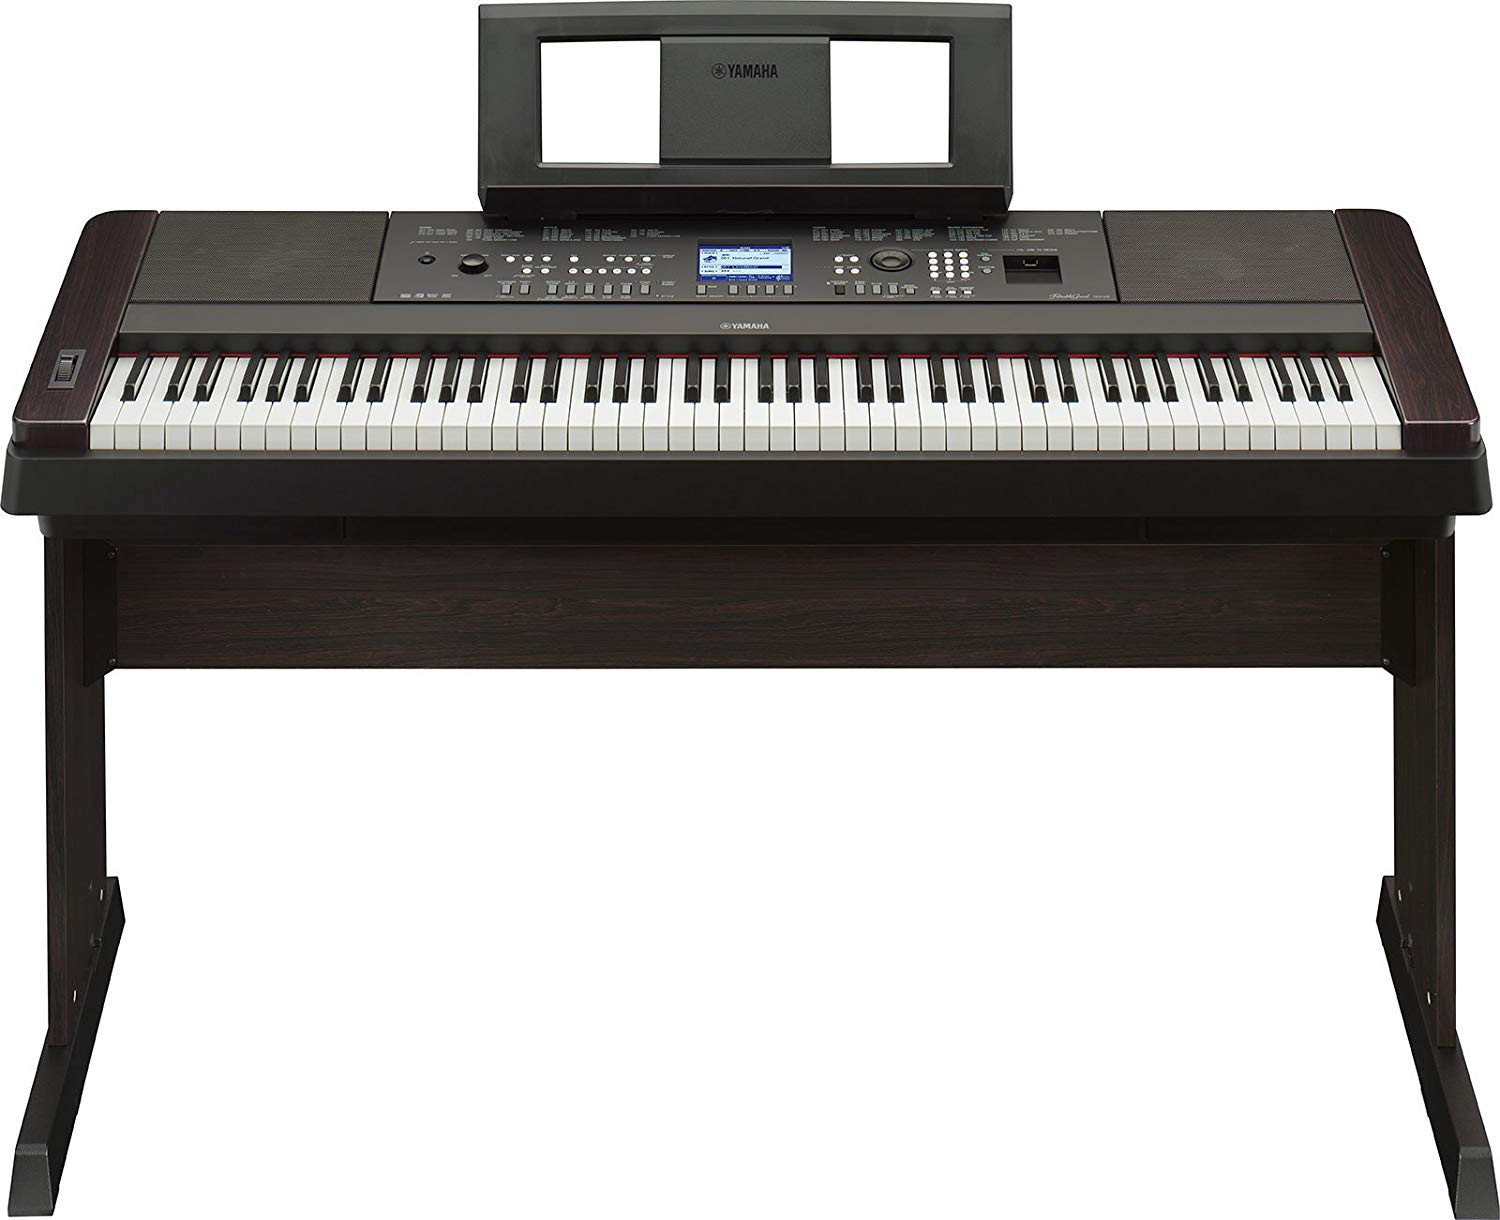 Yamaha DGX-650 Digital Piano Review 2019